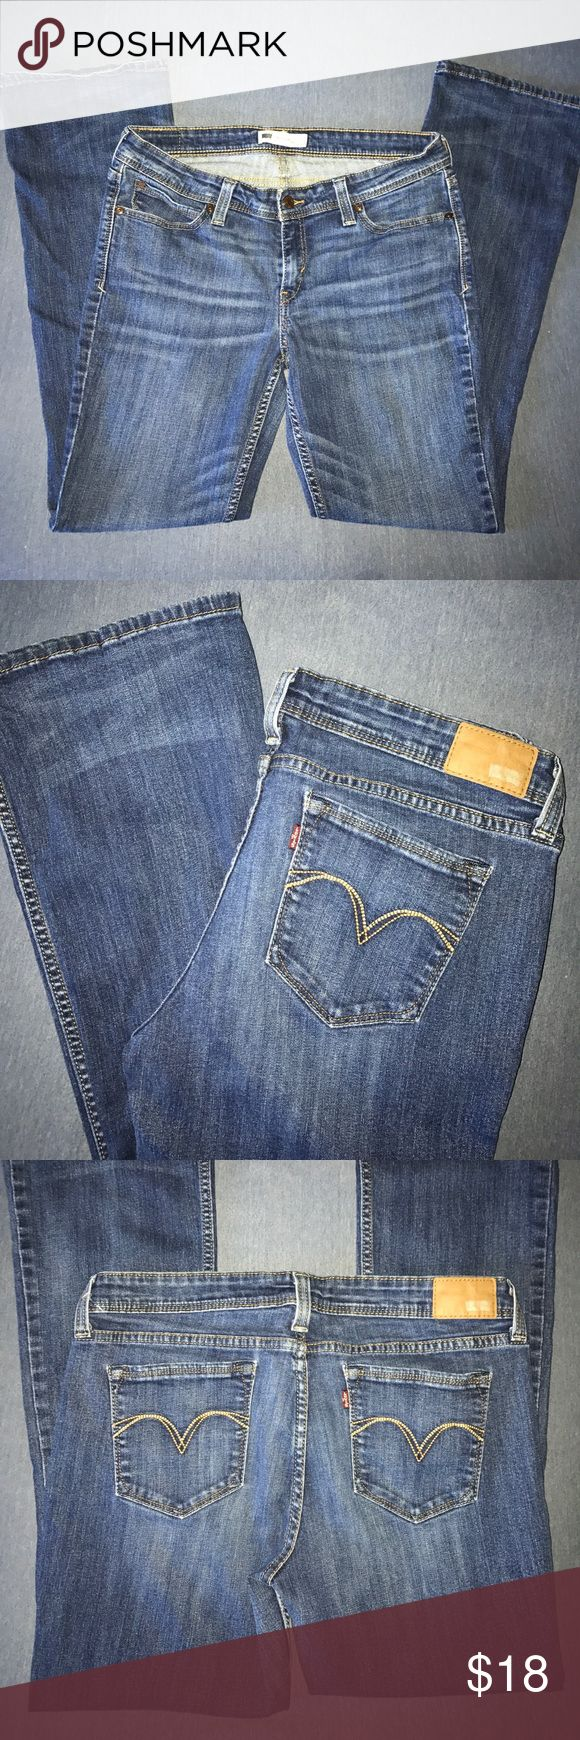 Levi's Demi Curve Jeans Low rise bootcut skinny jeans in great used condition. W:32 L:32 Levi's Jeans Boot Cut